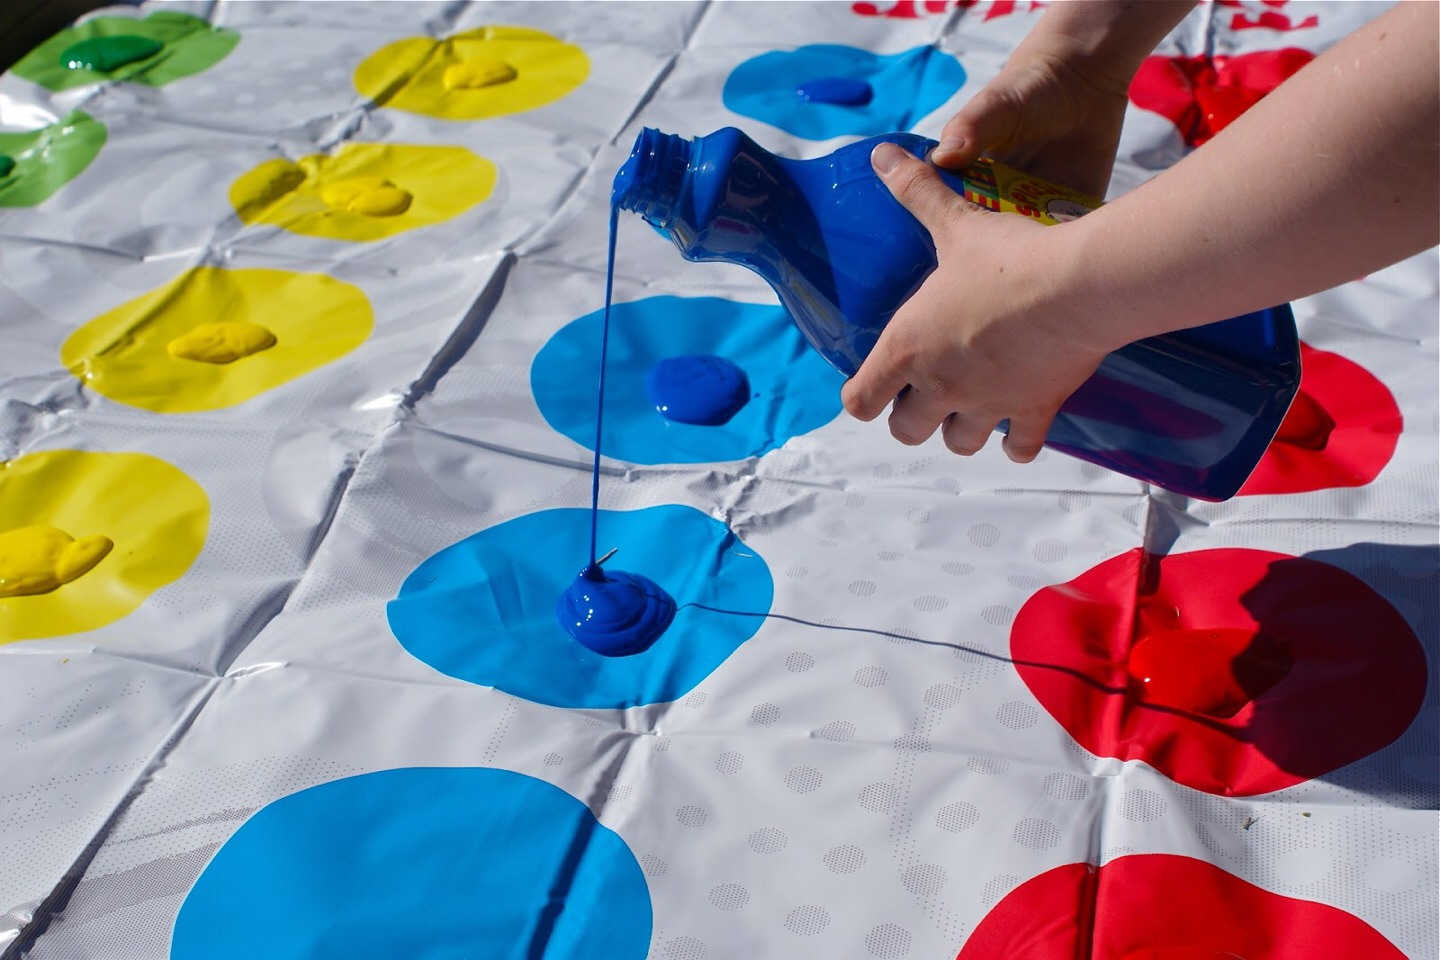 play messy twister! put paint or colored shaving cream on each spot for a fun twist on the classic twister game!